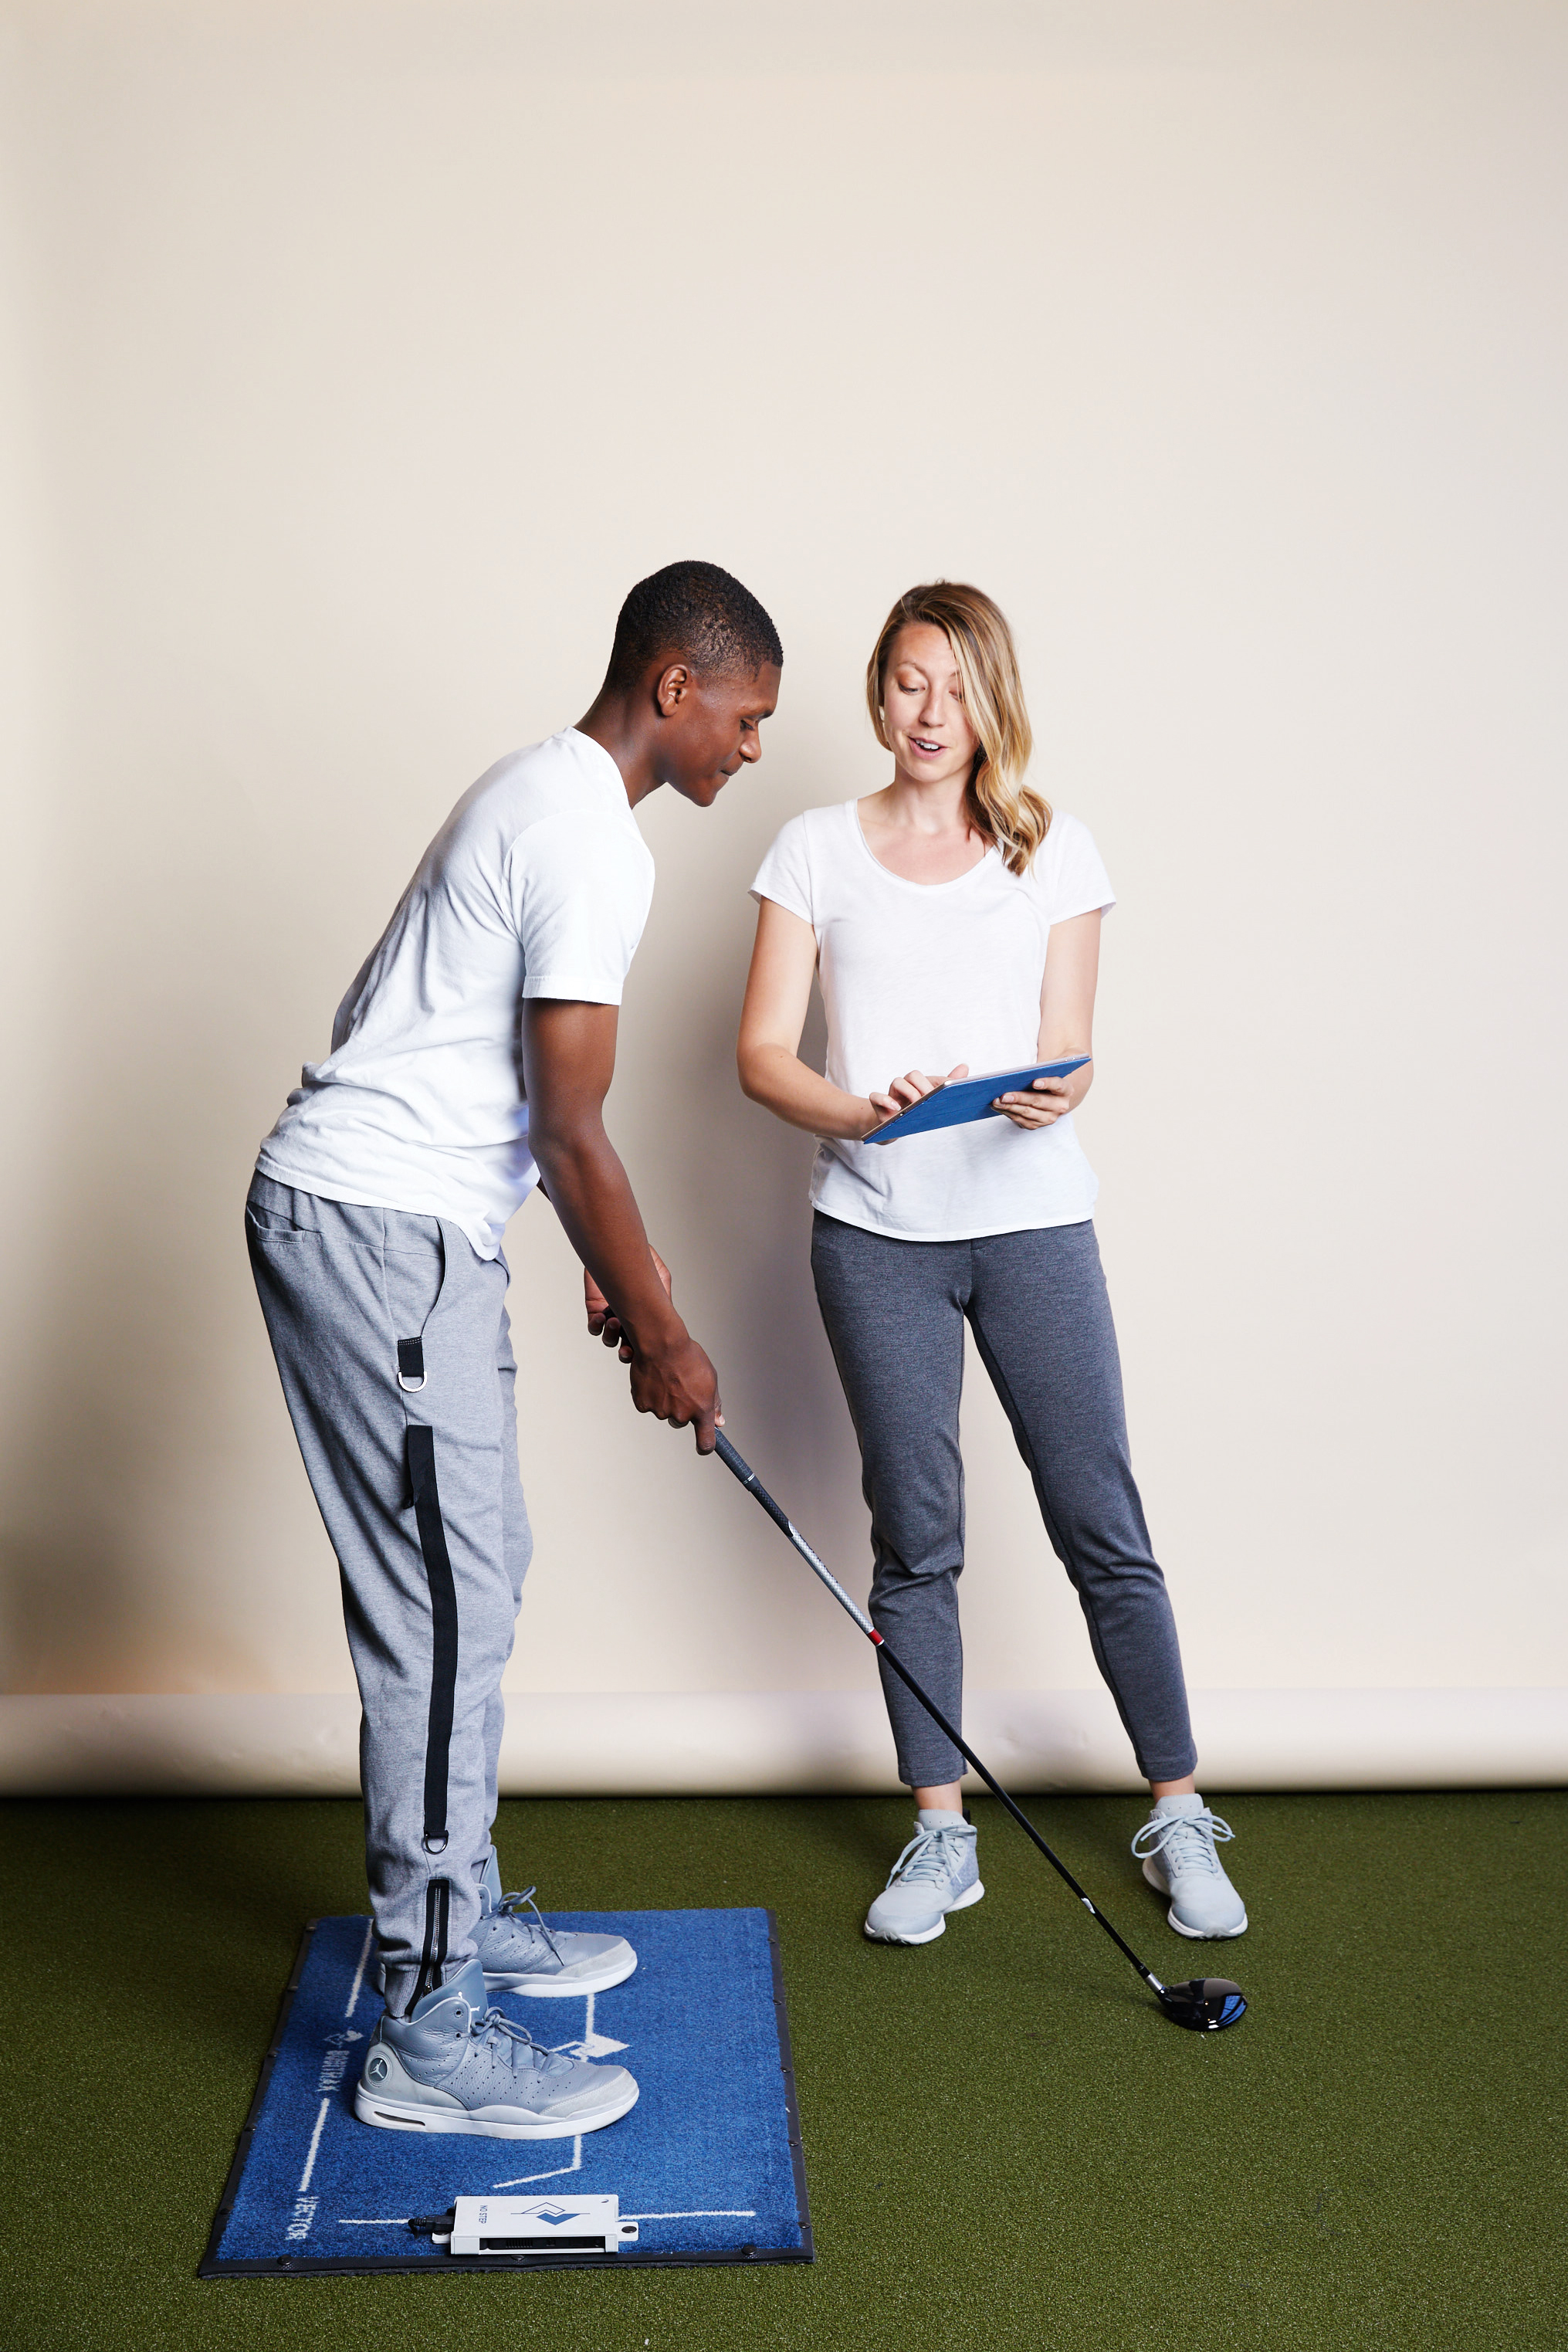 Latest technology in sports rehabiliation